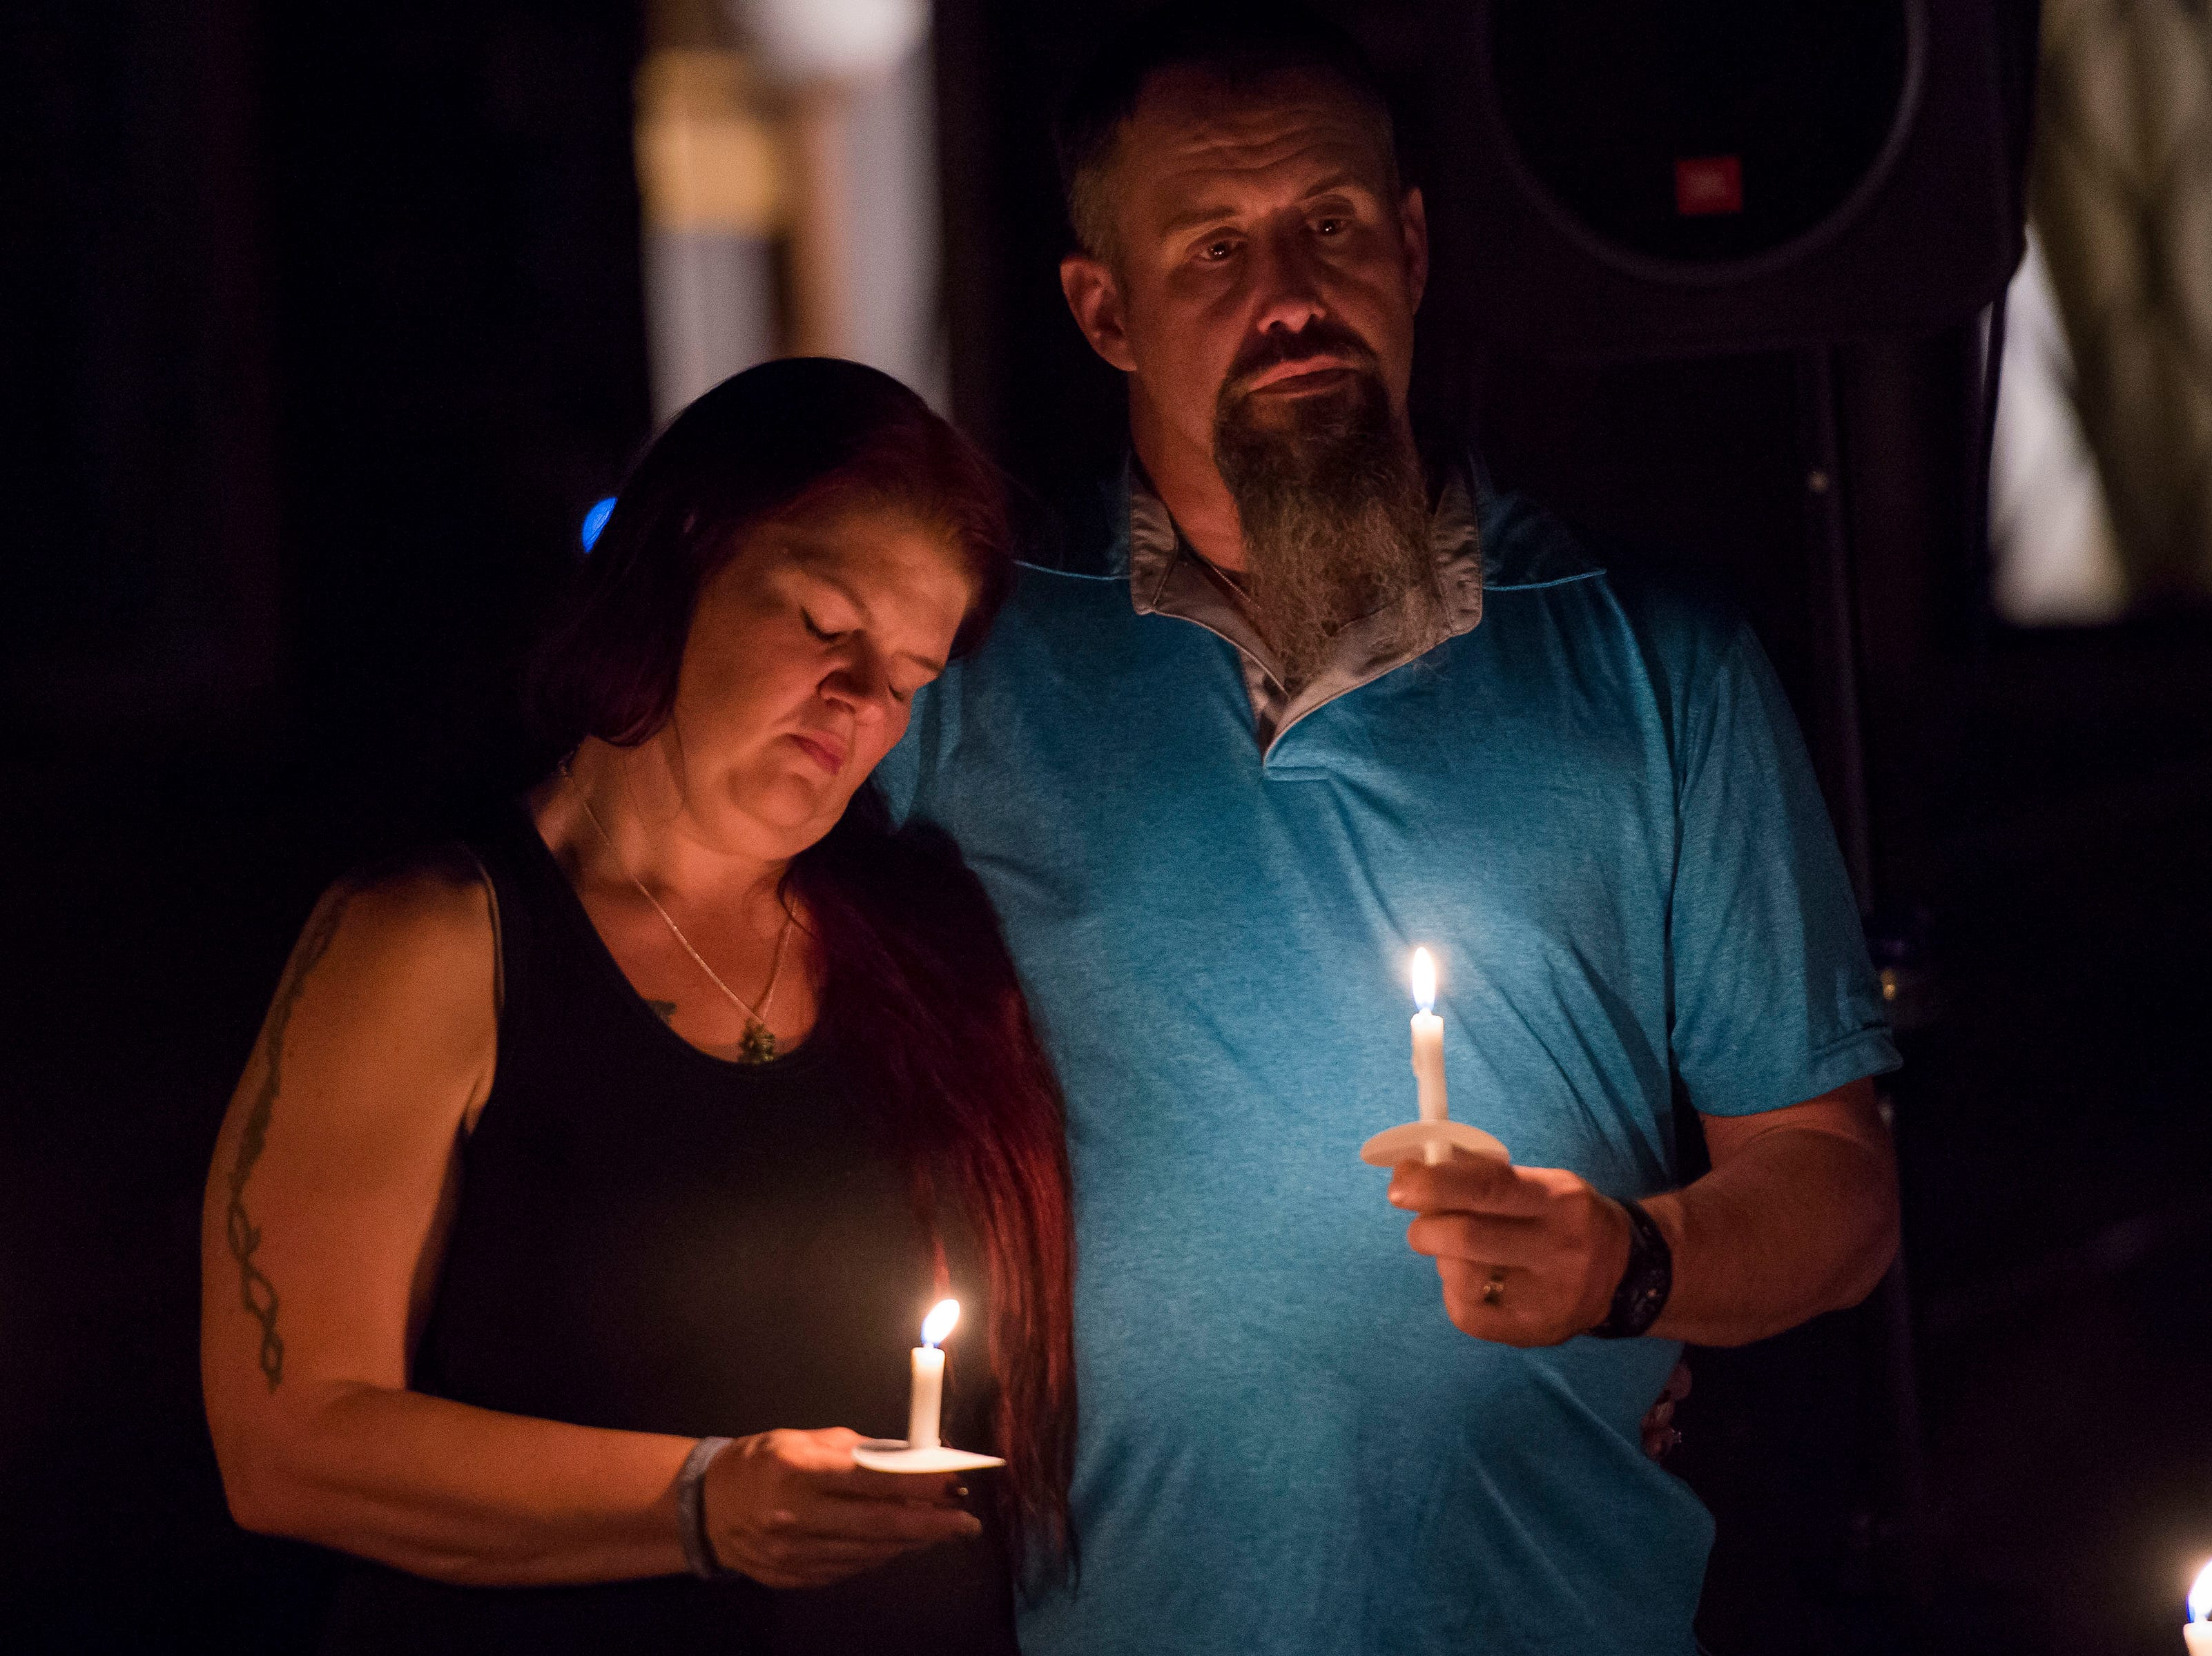 Penny and Dave Whaley, parents of Aric Whaley, a 17 year old who was fatally shot at his home early Tuesday morning, Sept. 4, comfort each during a vigil in front of the home on Saturday, Sept. 15, 2018, in Loveland, Colo. Gabriel Jesus Romero Ventura, 18, was arrested by Loveland police less than a mile from the residence on suspicion of manslaughter, first-degree assault and prohibited use of a weapon.